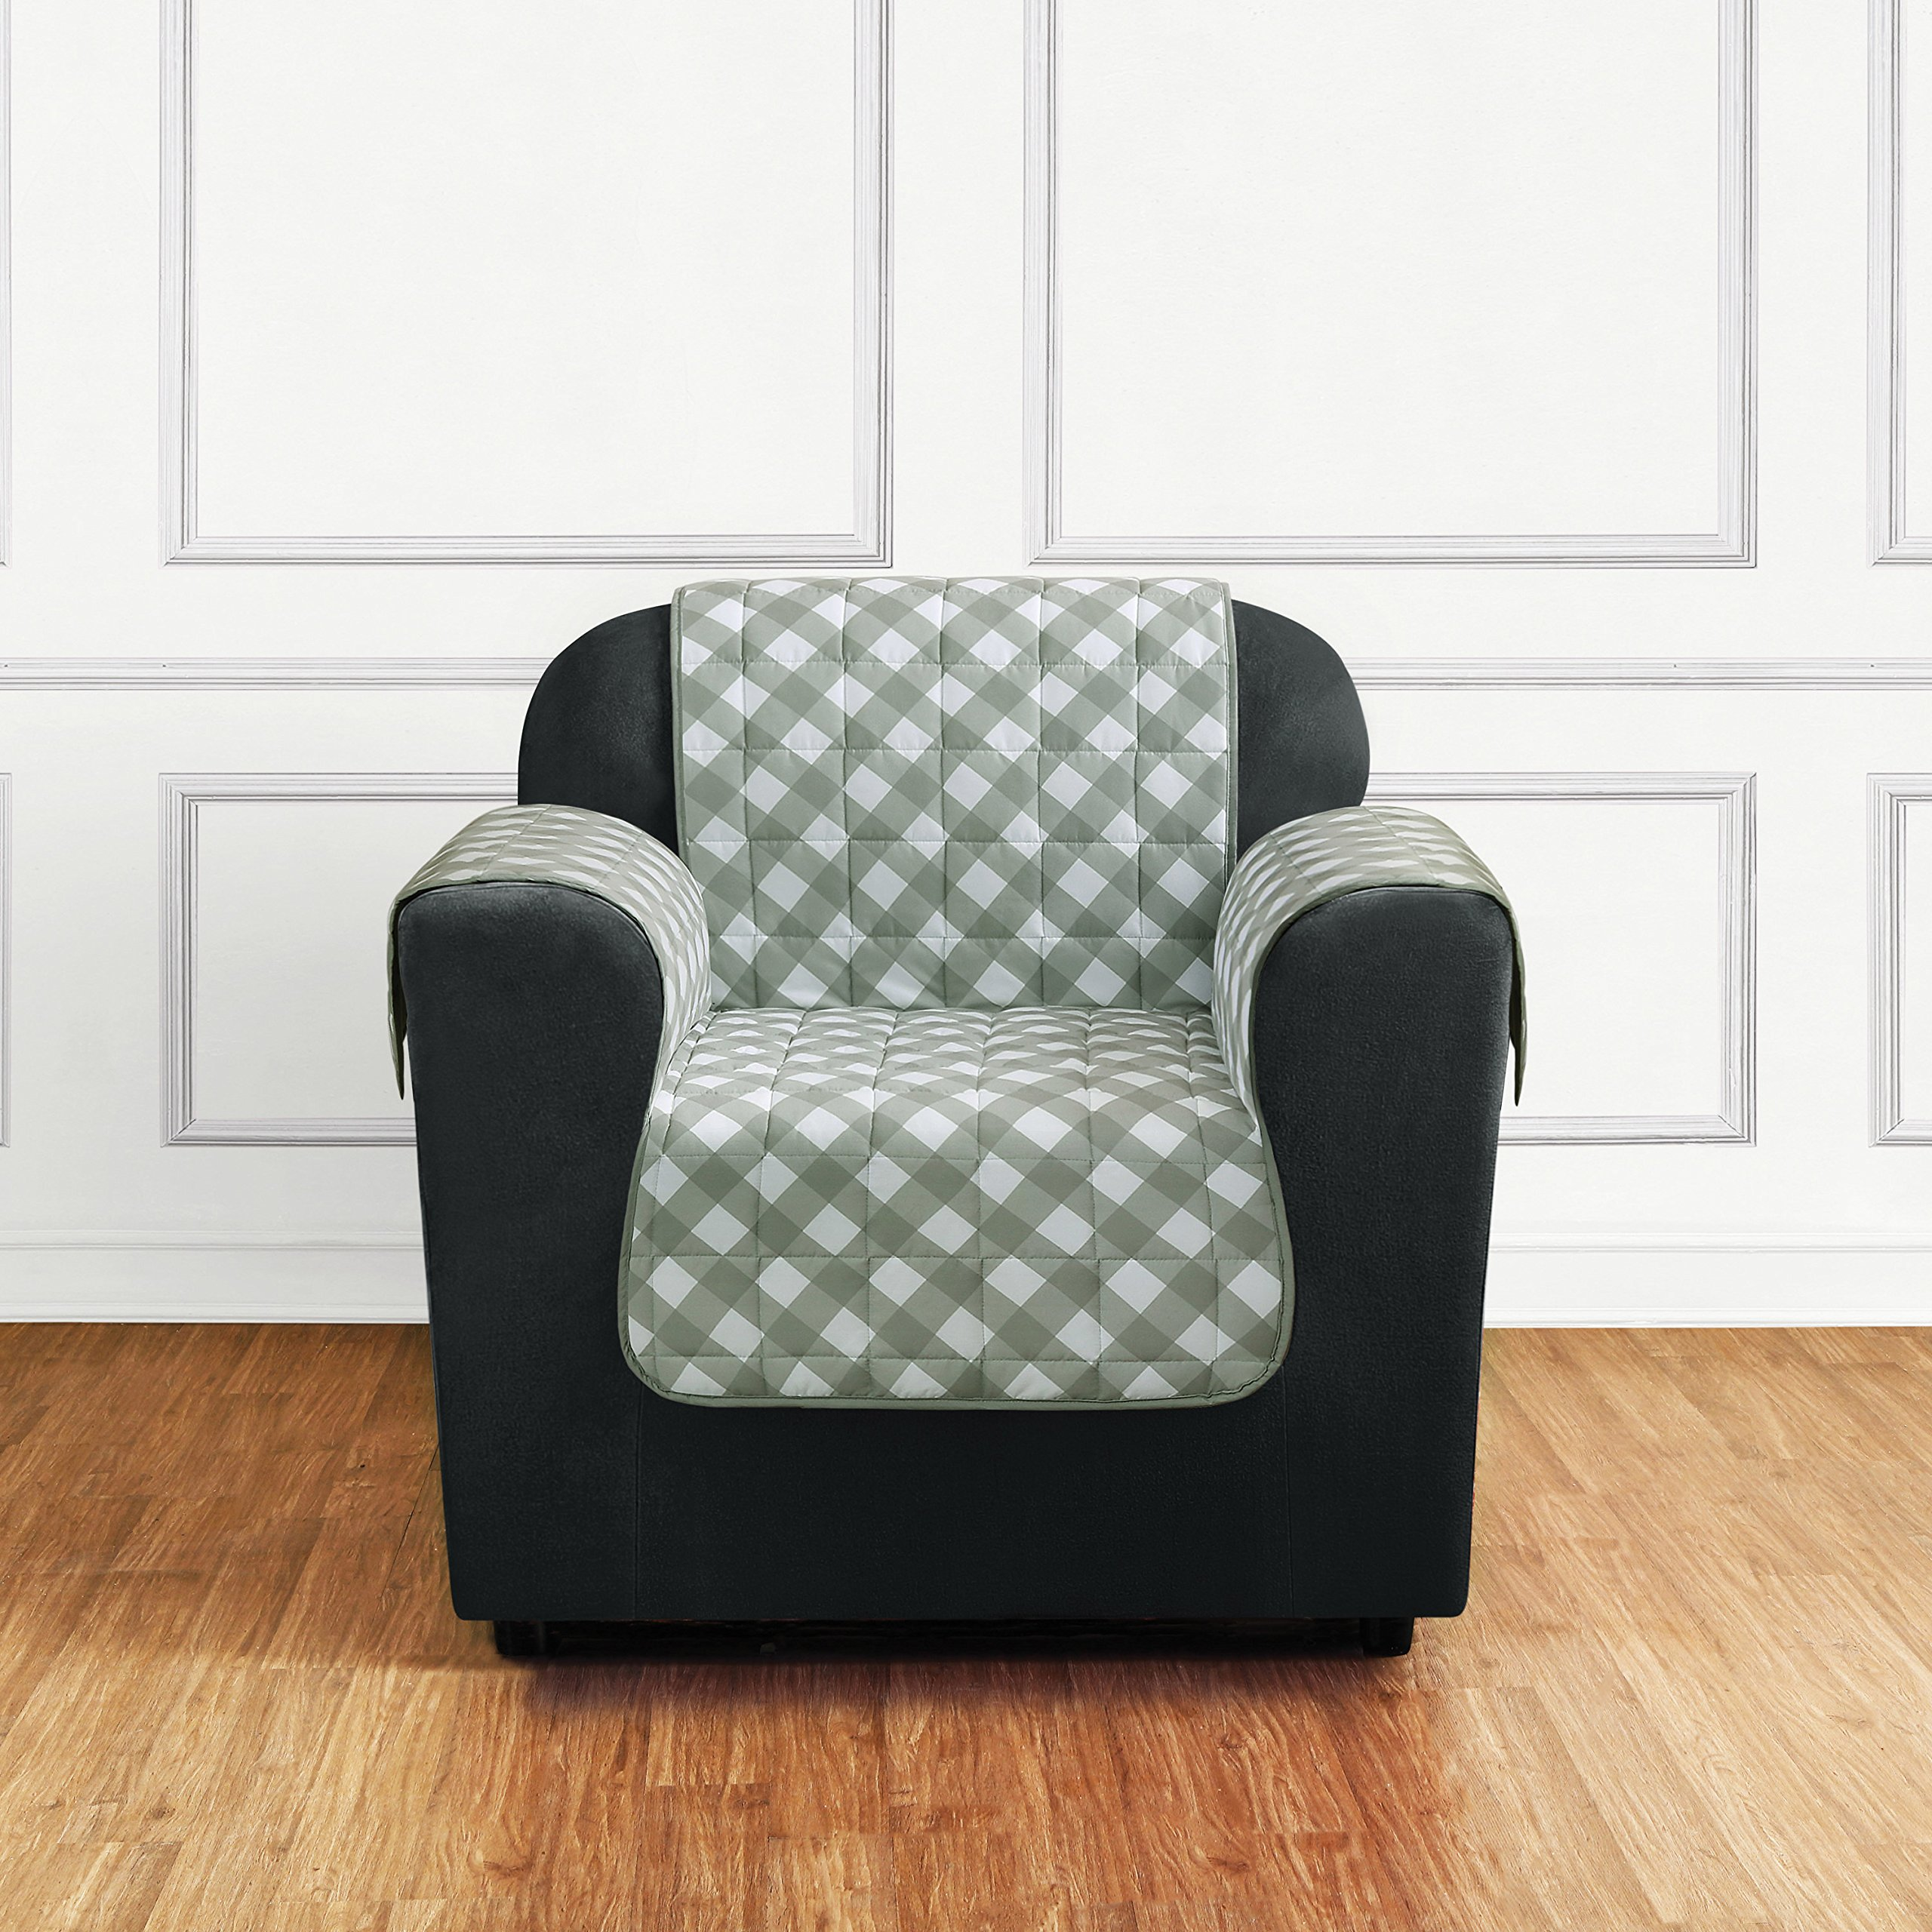 MN 1 Piece Light Green Grey Plaid Chair Protector, Gray Hunting Themed Furniture Protection Couch Cabin House Pattern Checked Tartan Pets Animals Covering Soft Lodging Buffalo Checkered, Polyester